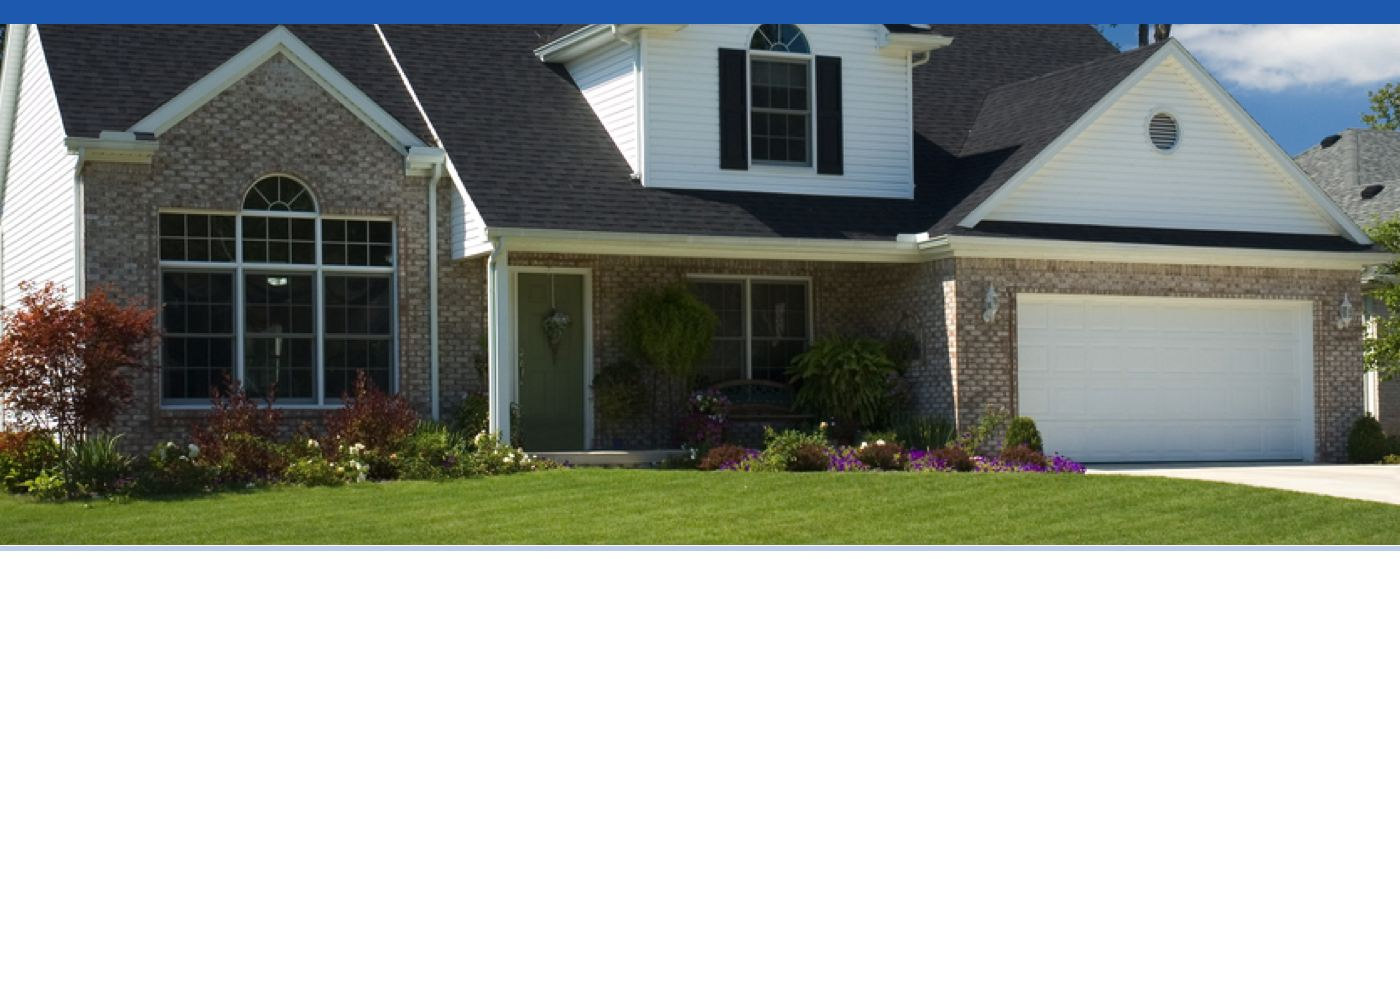 Rent To Own Homes In Quakertown And Surrounding Areas   Lease Purchase  Quakertown And Surrounding Areas   Cyndy Sells Houses